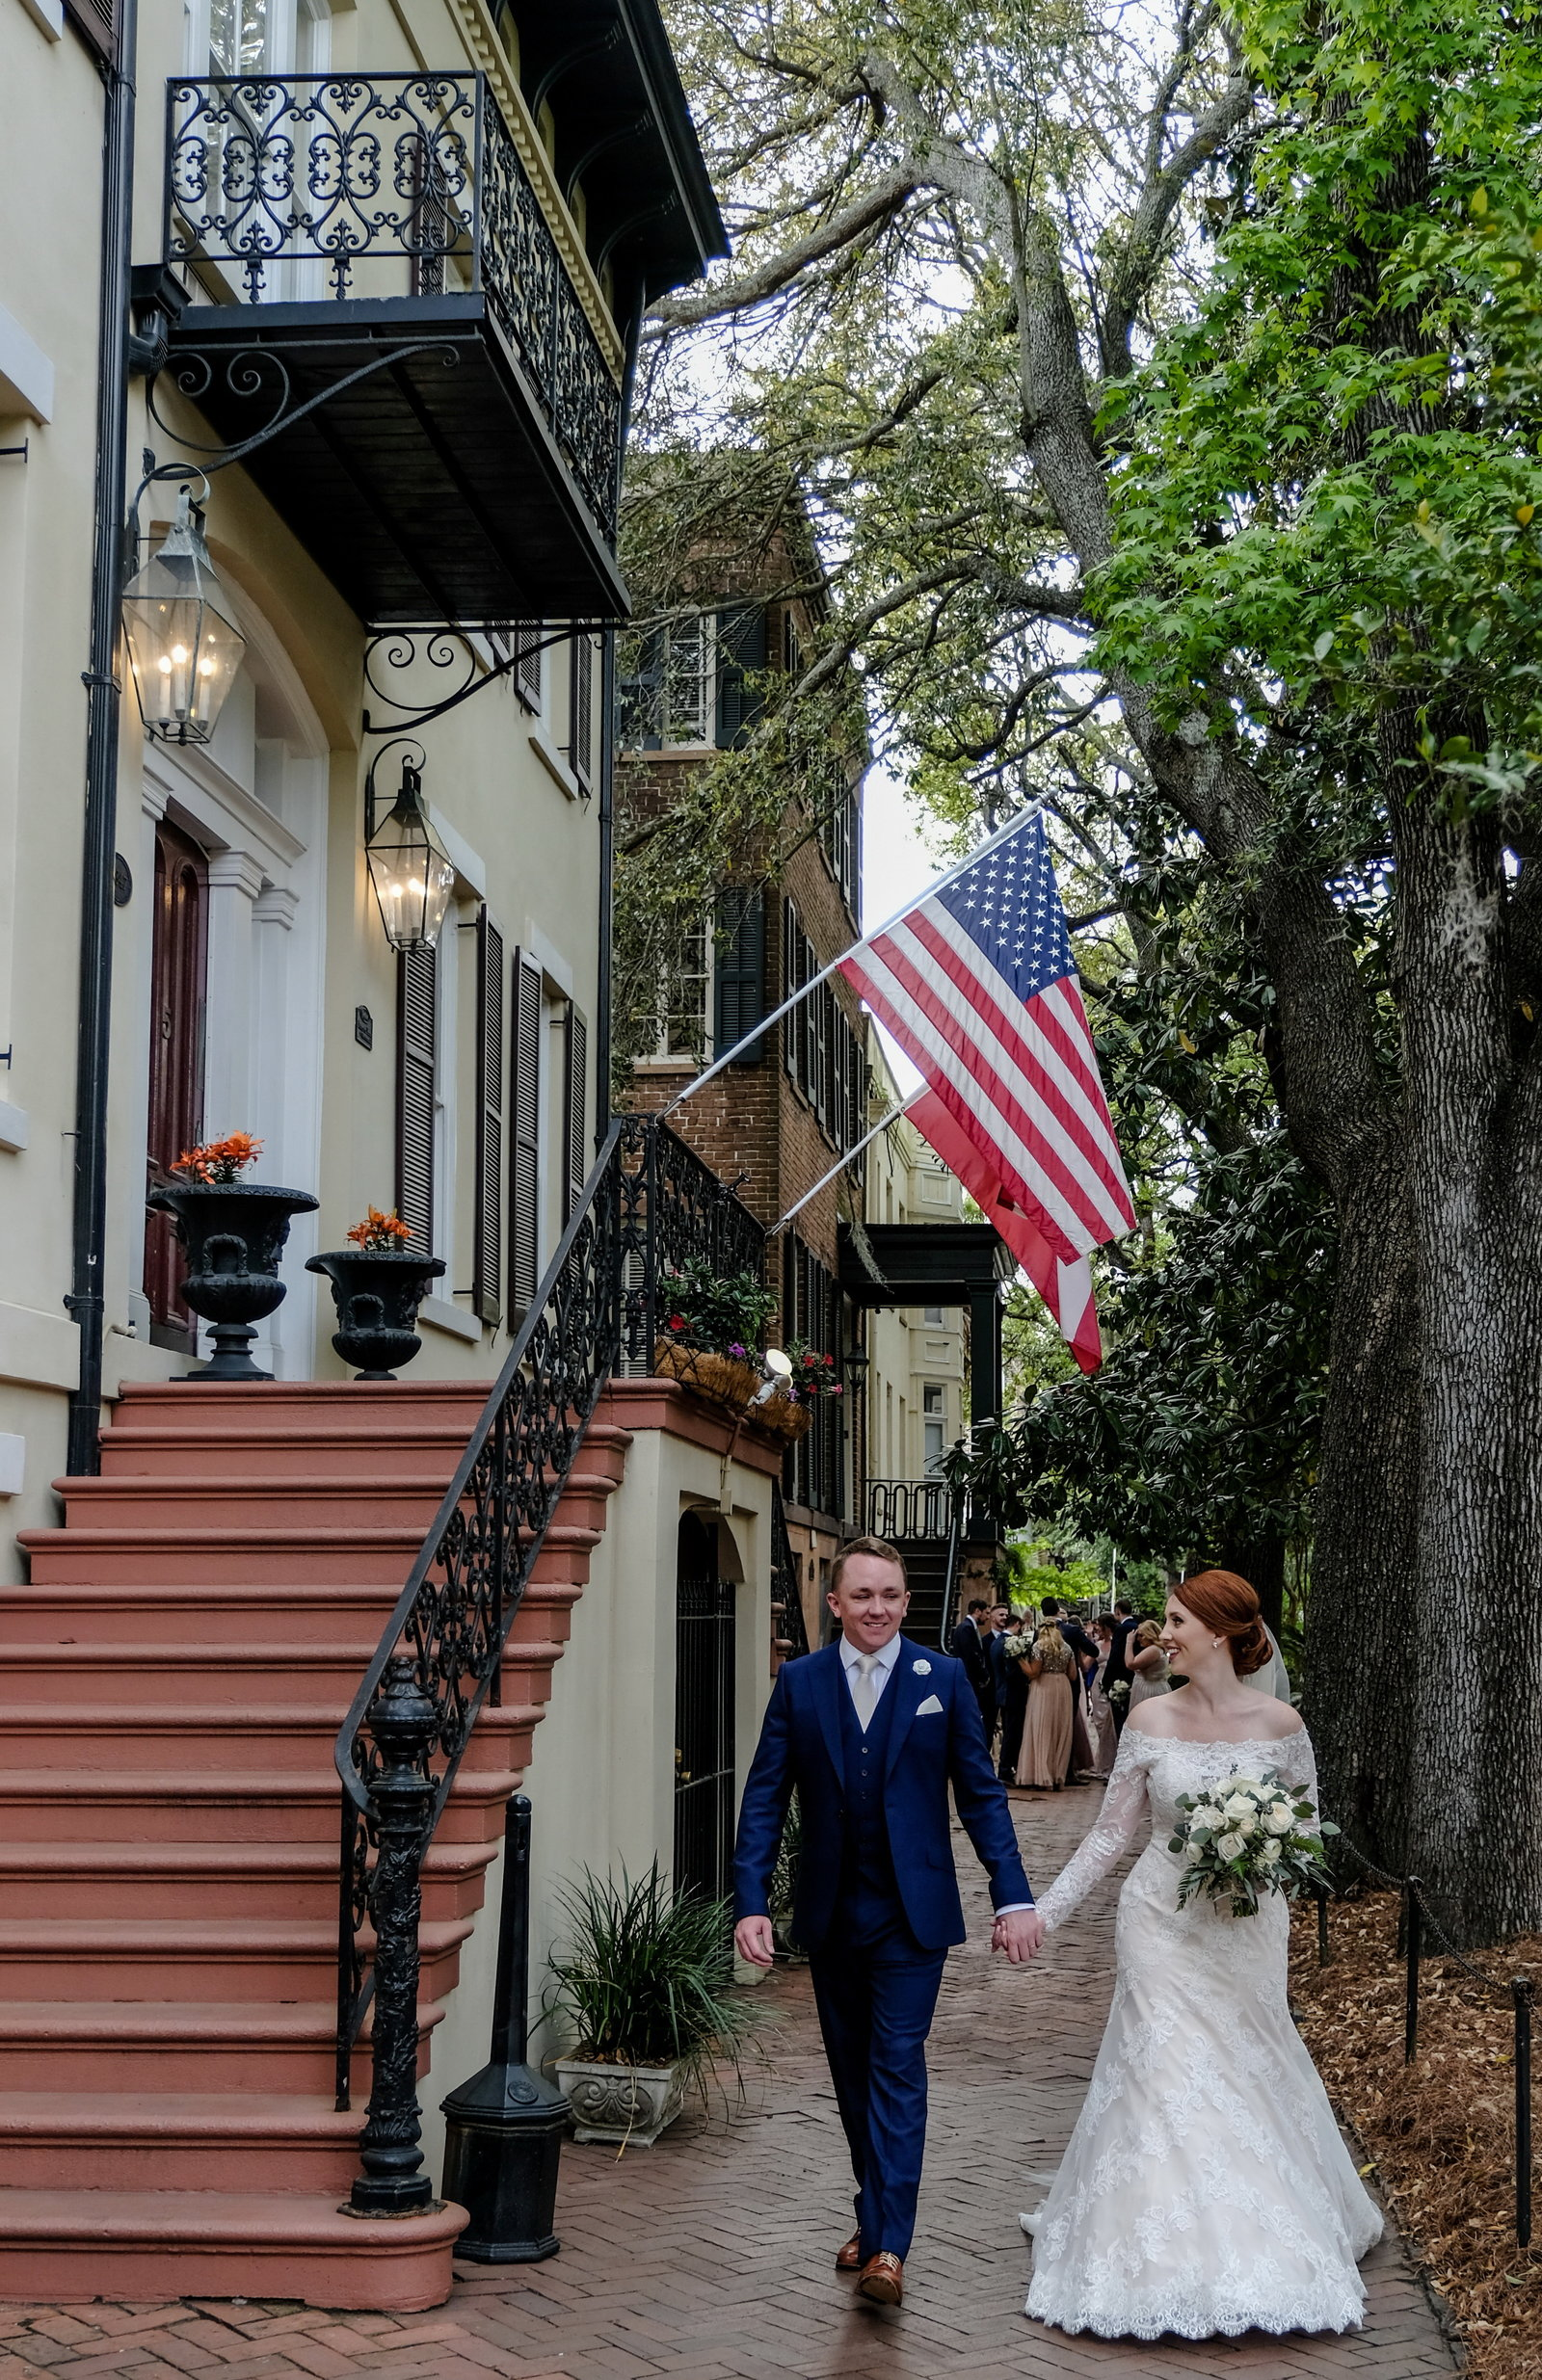 Kathleen & Thomas, Savannah Wedding Photographer, Bobbi Brinkman Photography